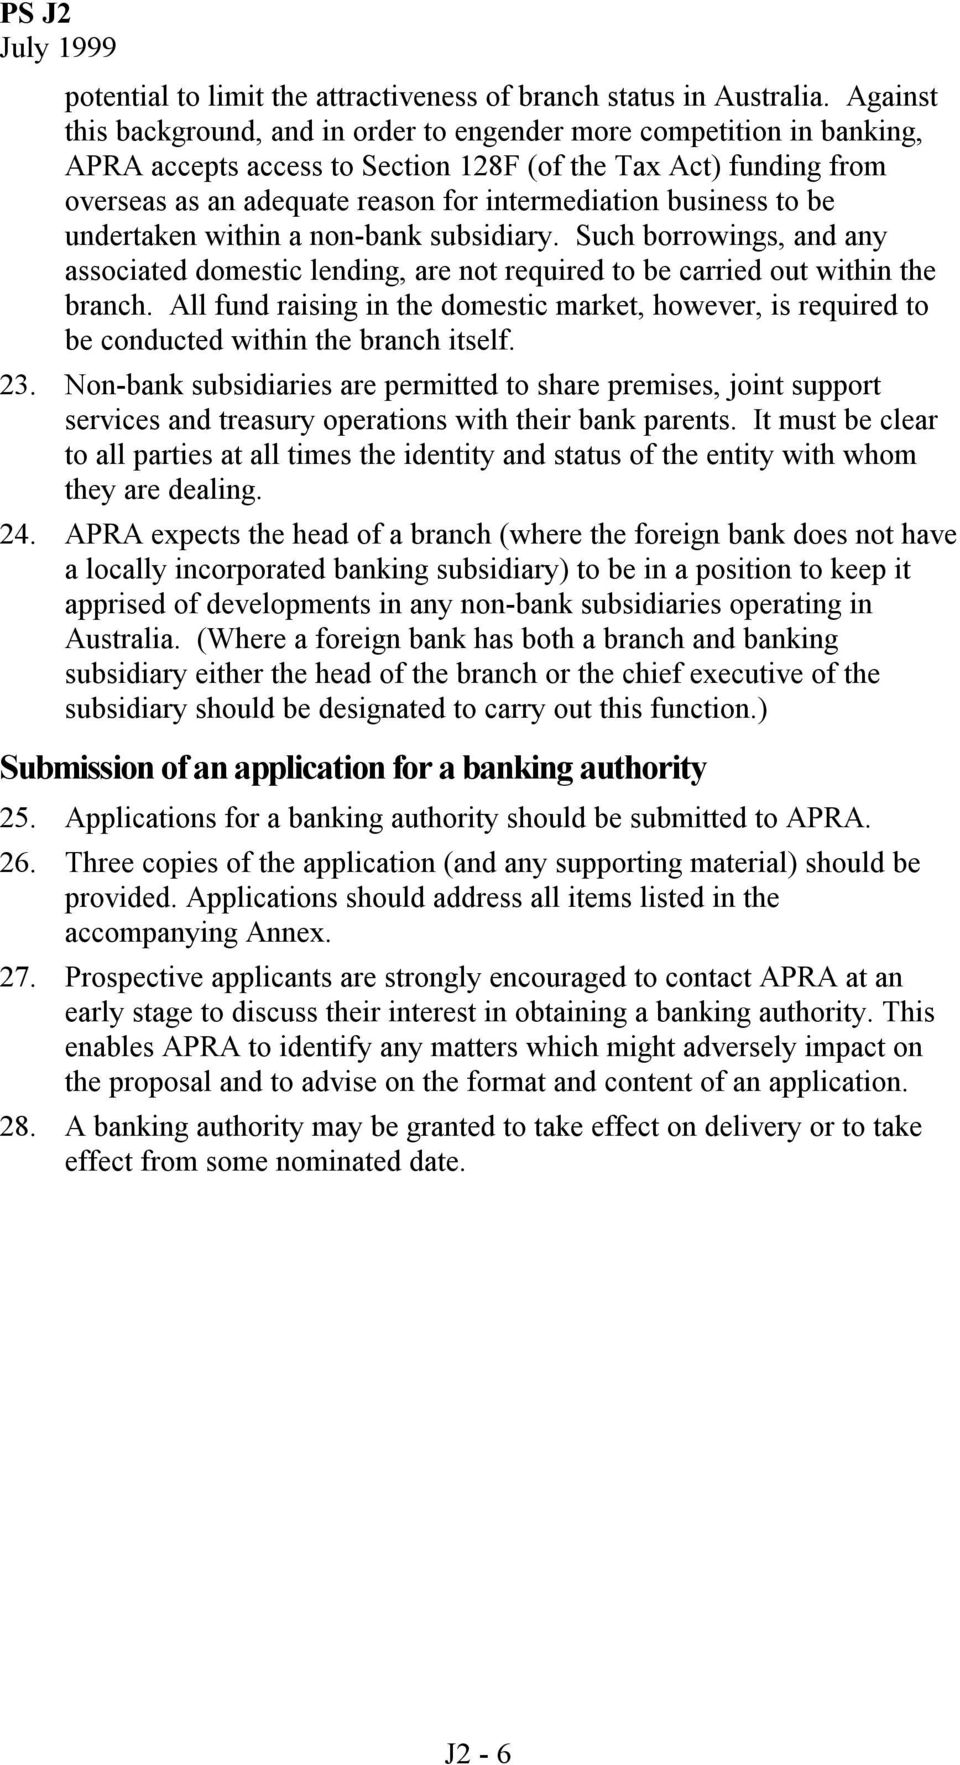 business to be undertaken within a non-bank subsidiary. Such borrowings, and any associated domestic lending, are not required to be carried out within the branch.